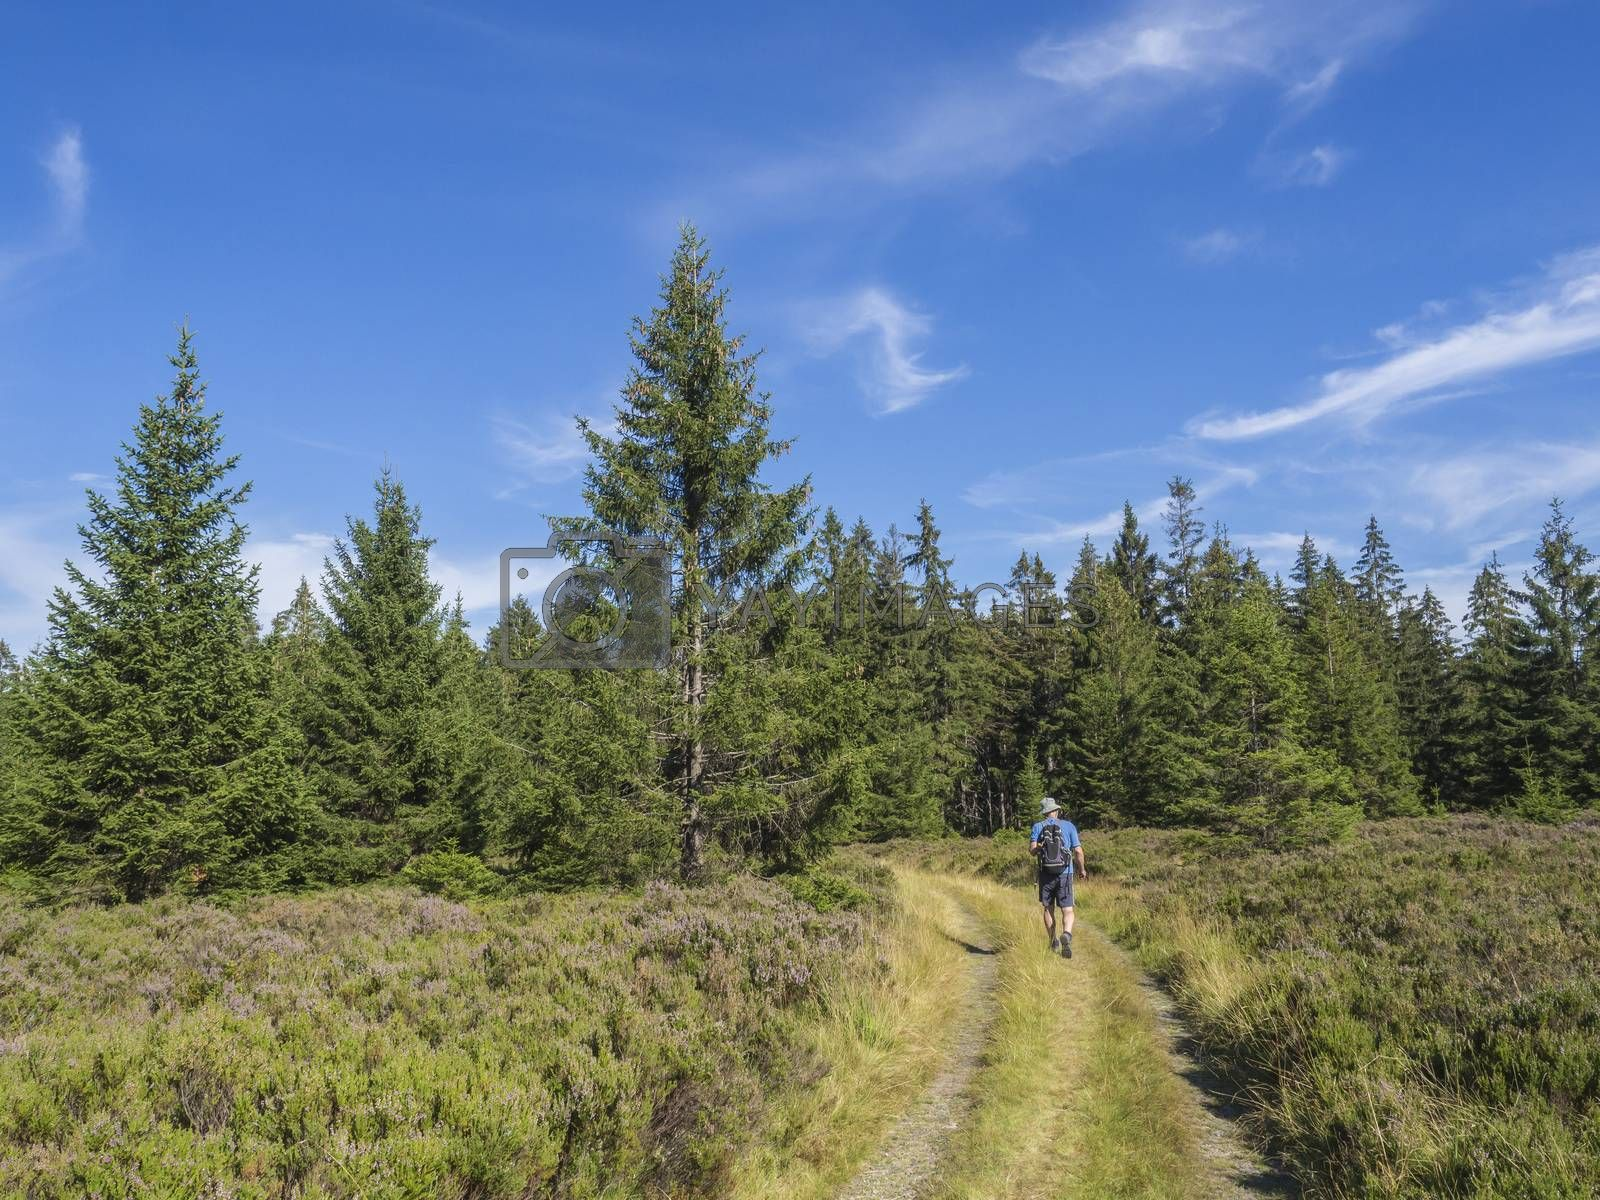 young man hiker with backpack and hat walking on winding forest track road in Brdy mountain hills with green spruce trees forest and blue sky, Czech Republic.